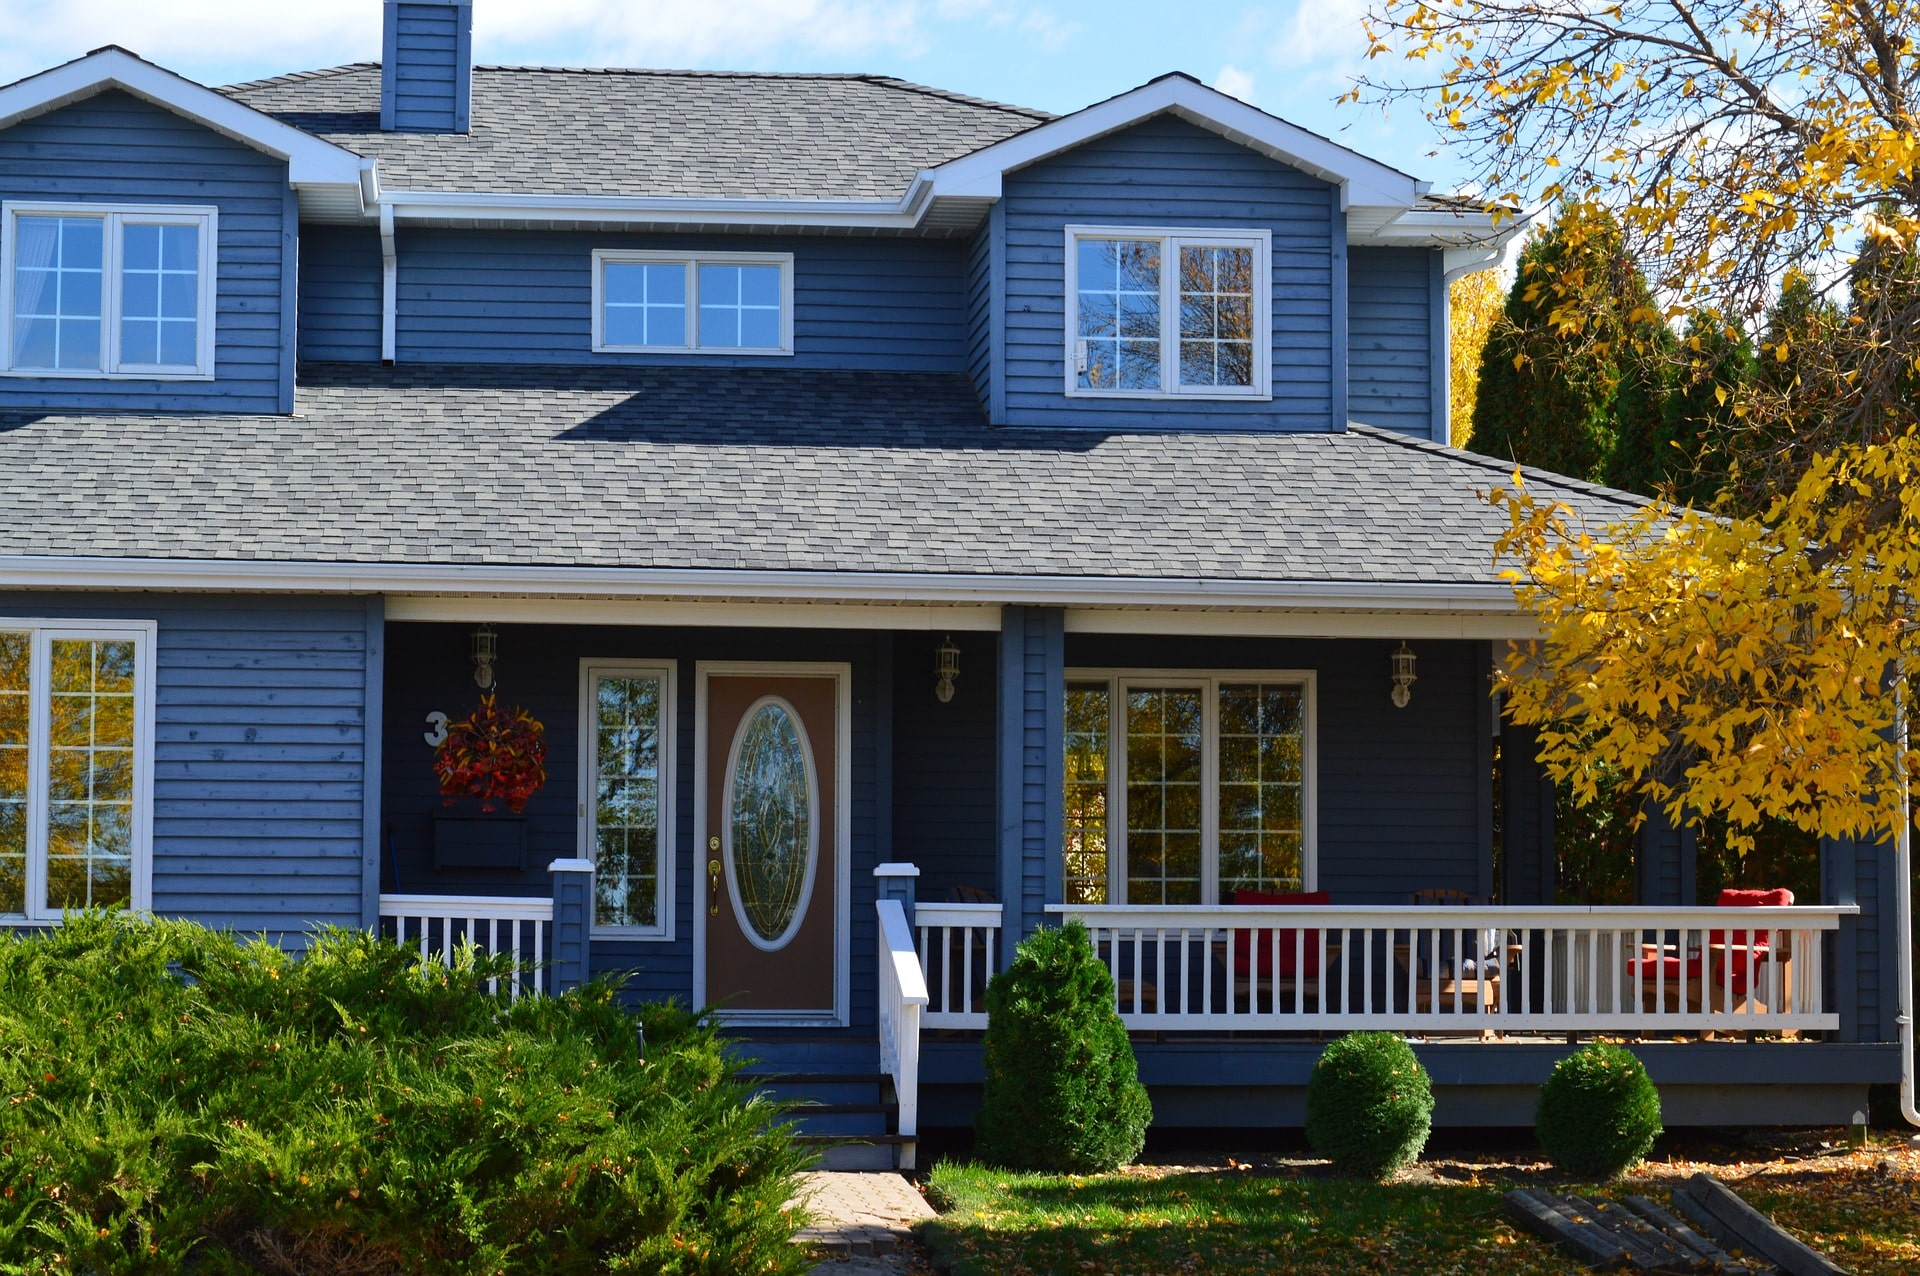 Front of the Blue American Style House - SolVibrations